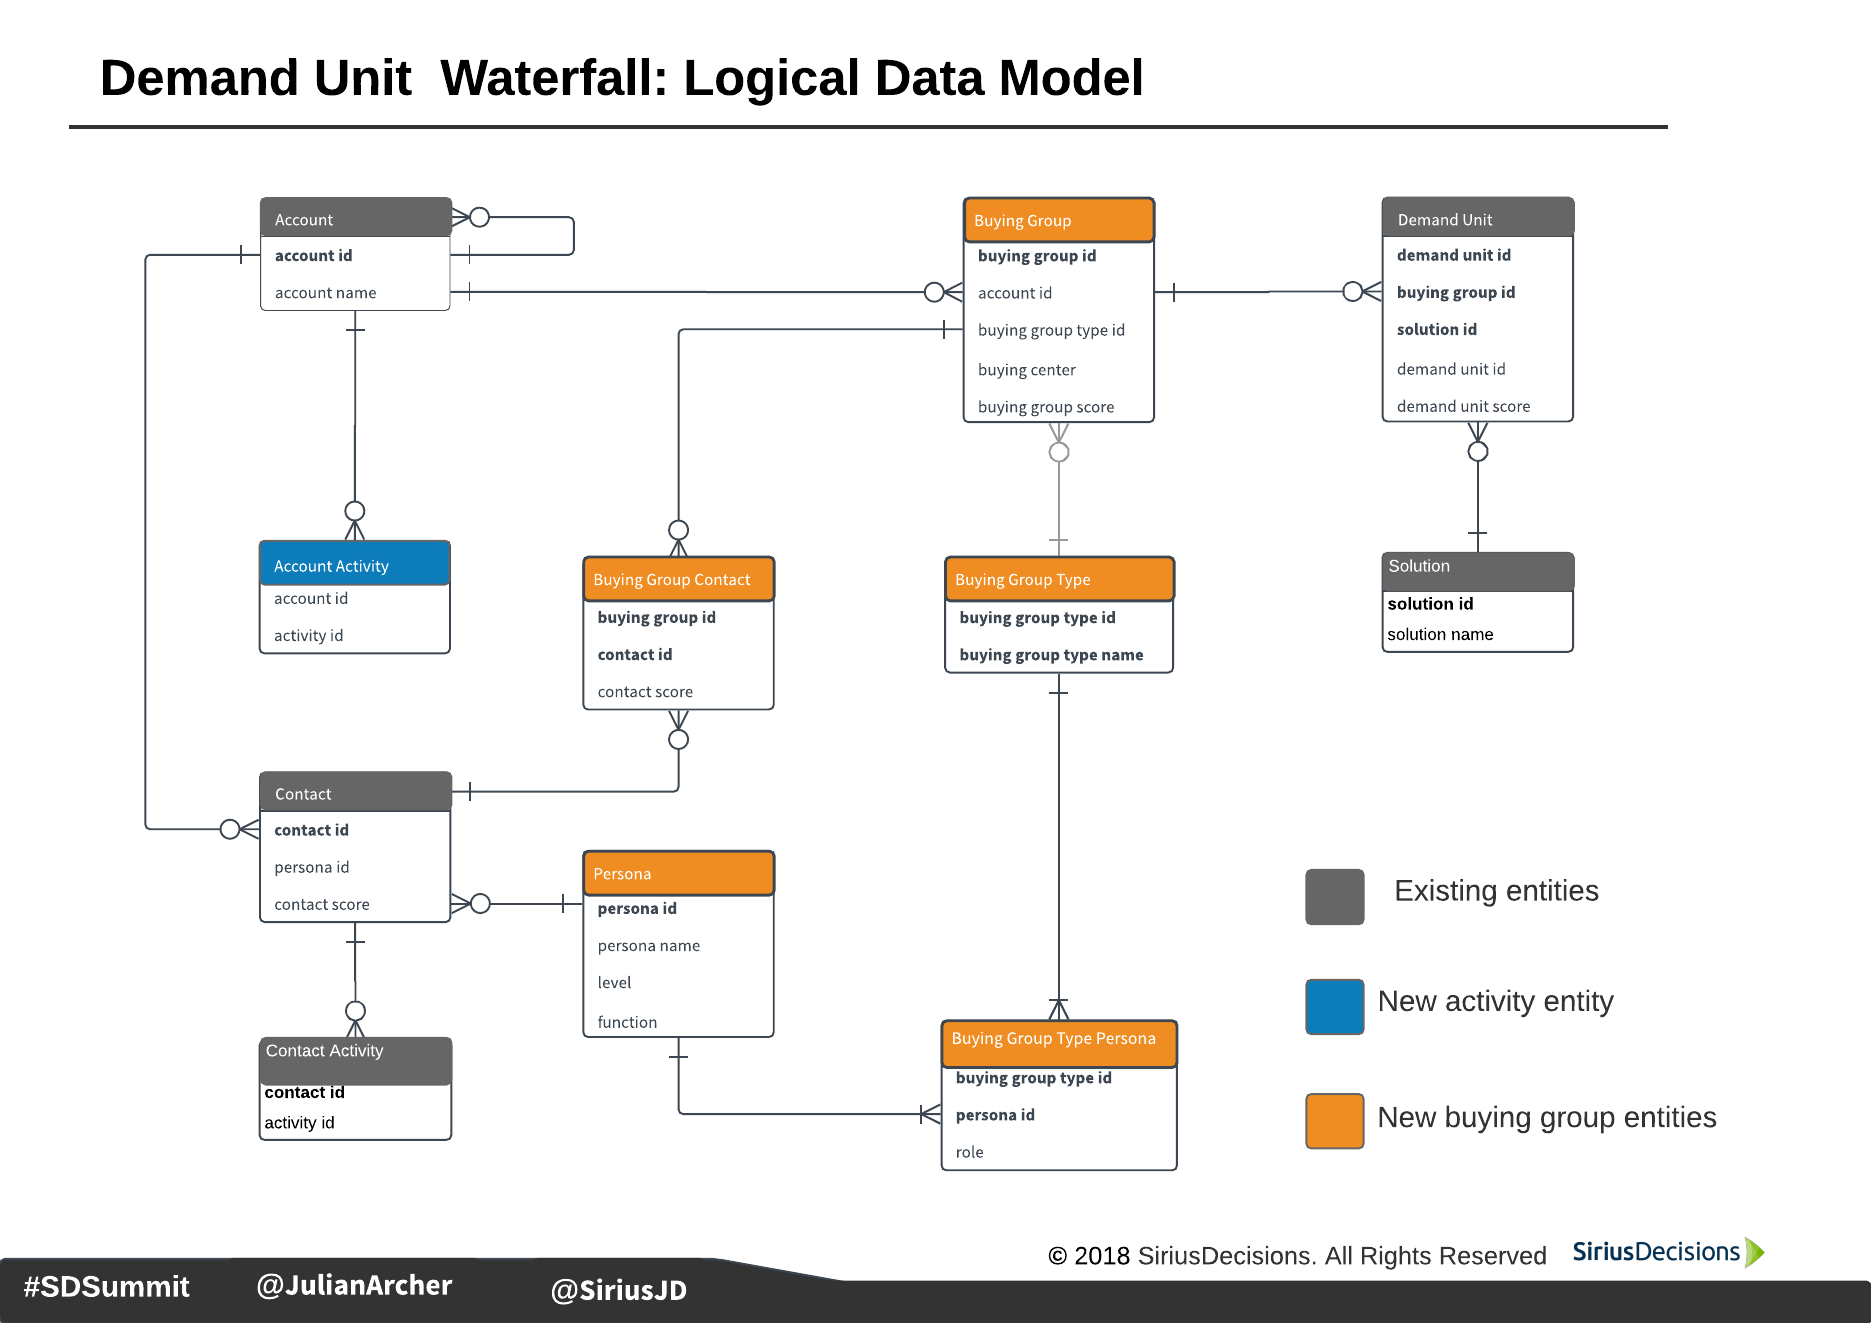 Using a Customer Data Platform to Implement the Demand Unit Waterfall (or ABM) Data Model